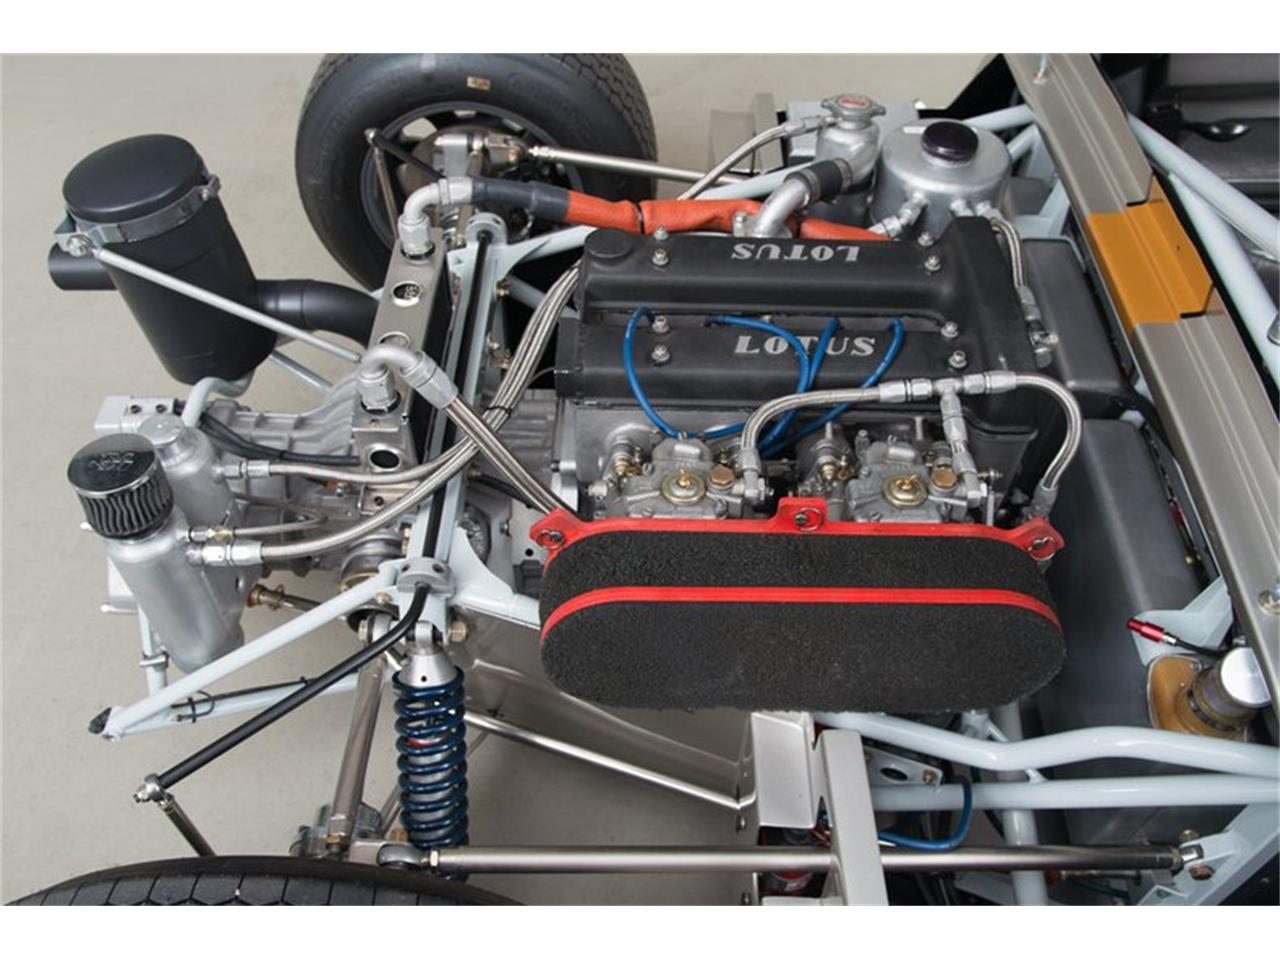 1967 Ginetta G12 for sale in Scotts Valley, CA – photo 37